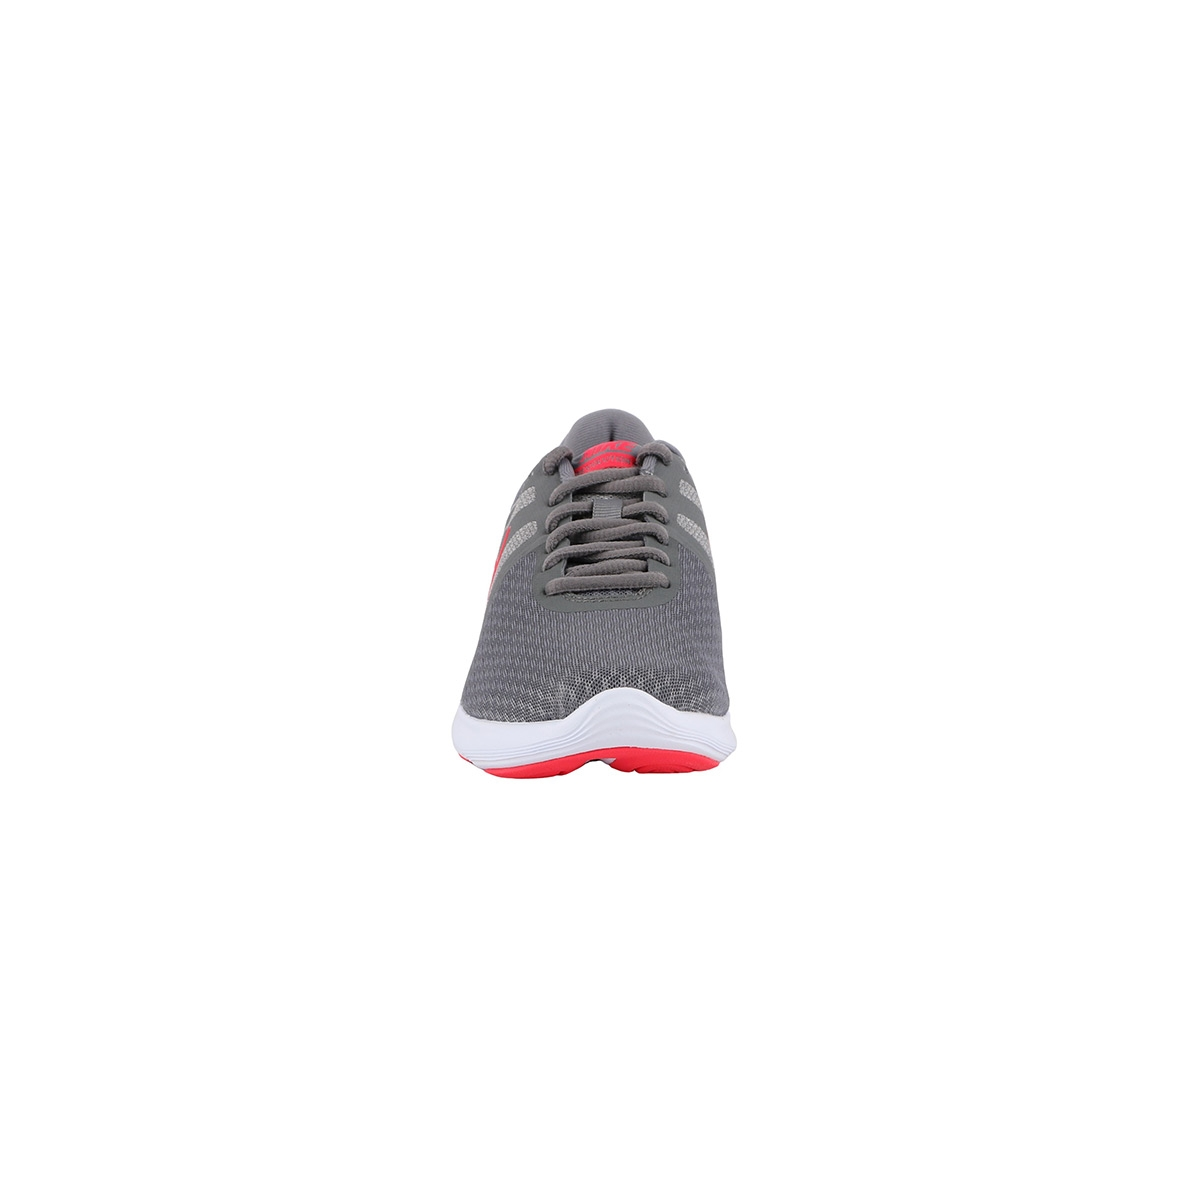 Nike Wmns Revolution 4 EU Cool Grey Red Orbit Gris Rojo Mujer